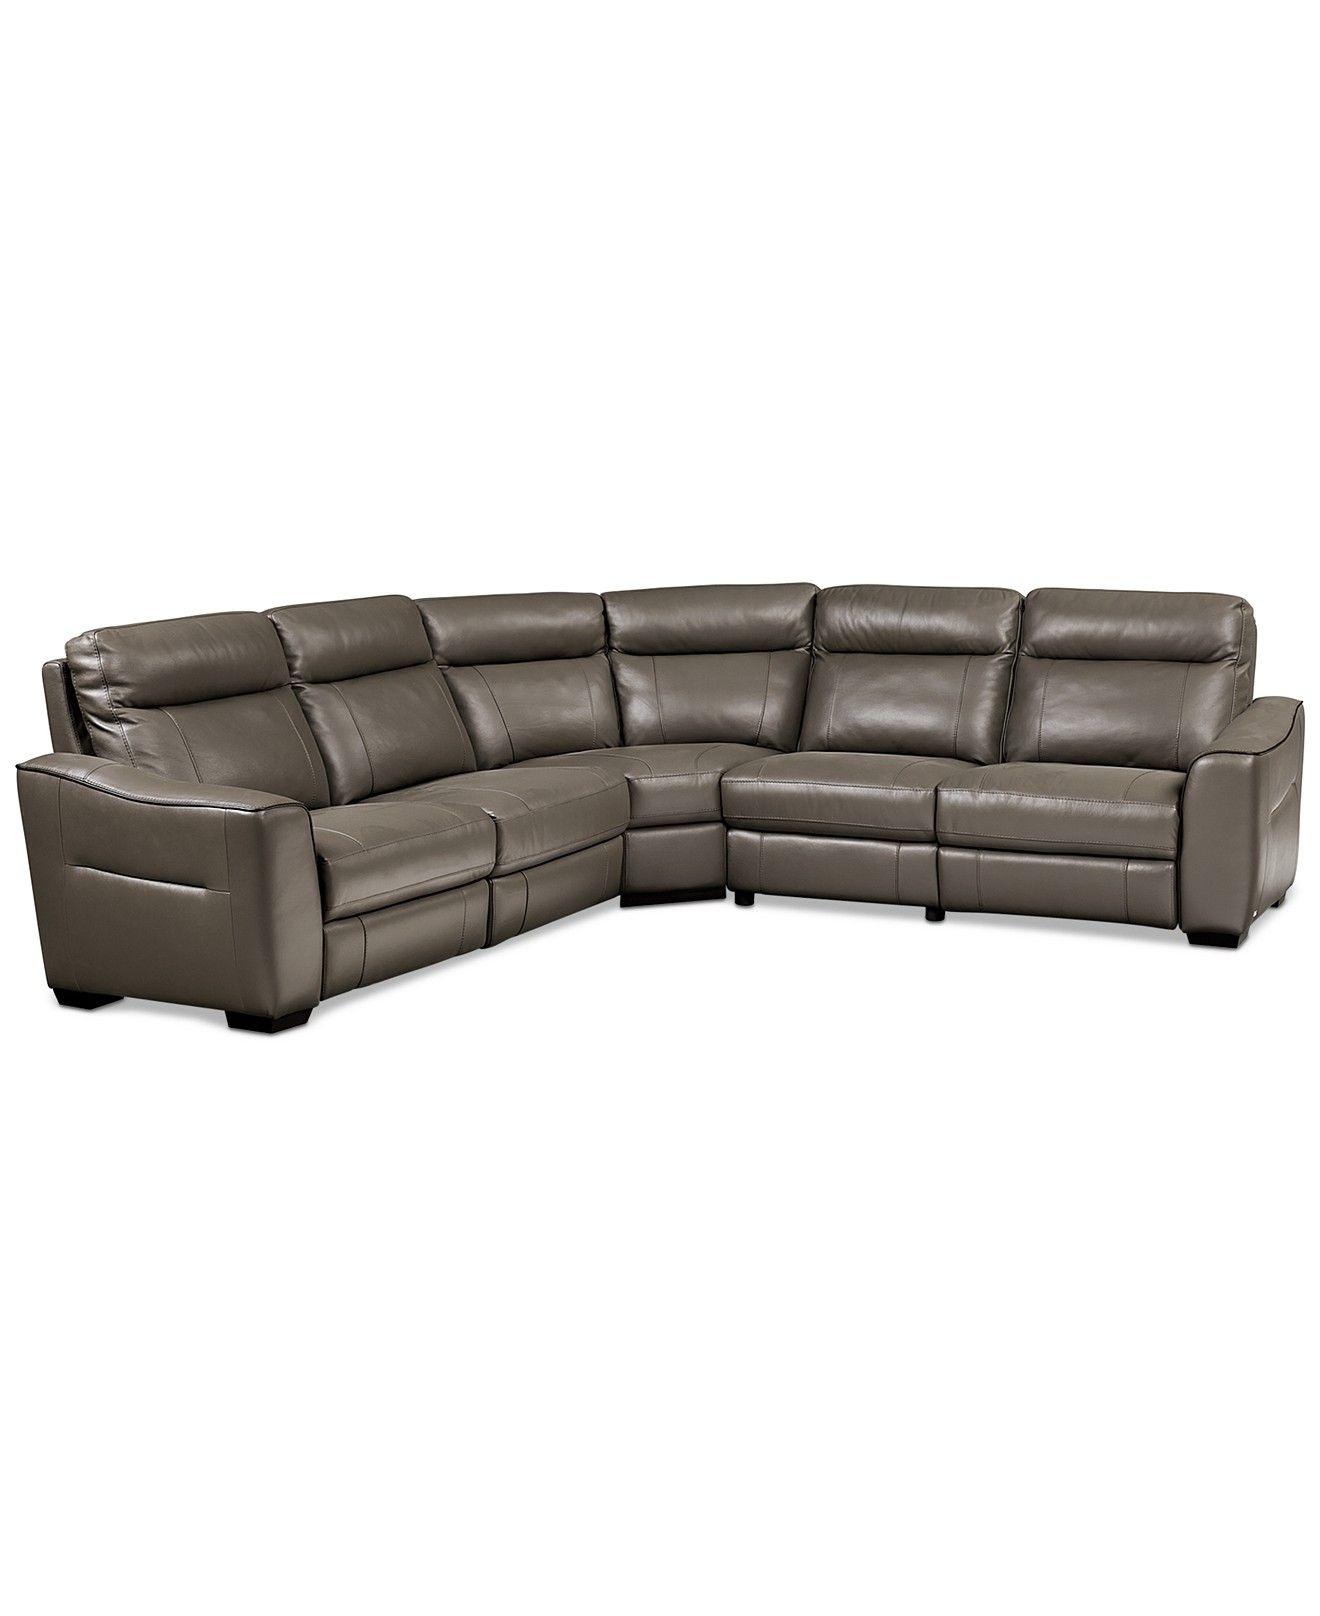 Destin Leather 5 Piece Sectional Sofa With 3 Power Recliners Throughout Macys Leather Sectional Sofas (View 8 of 10)